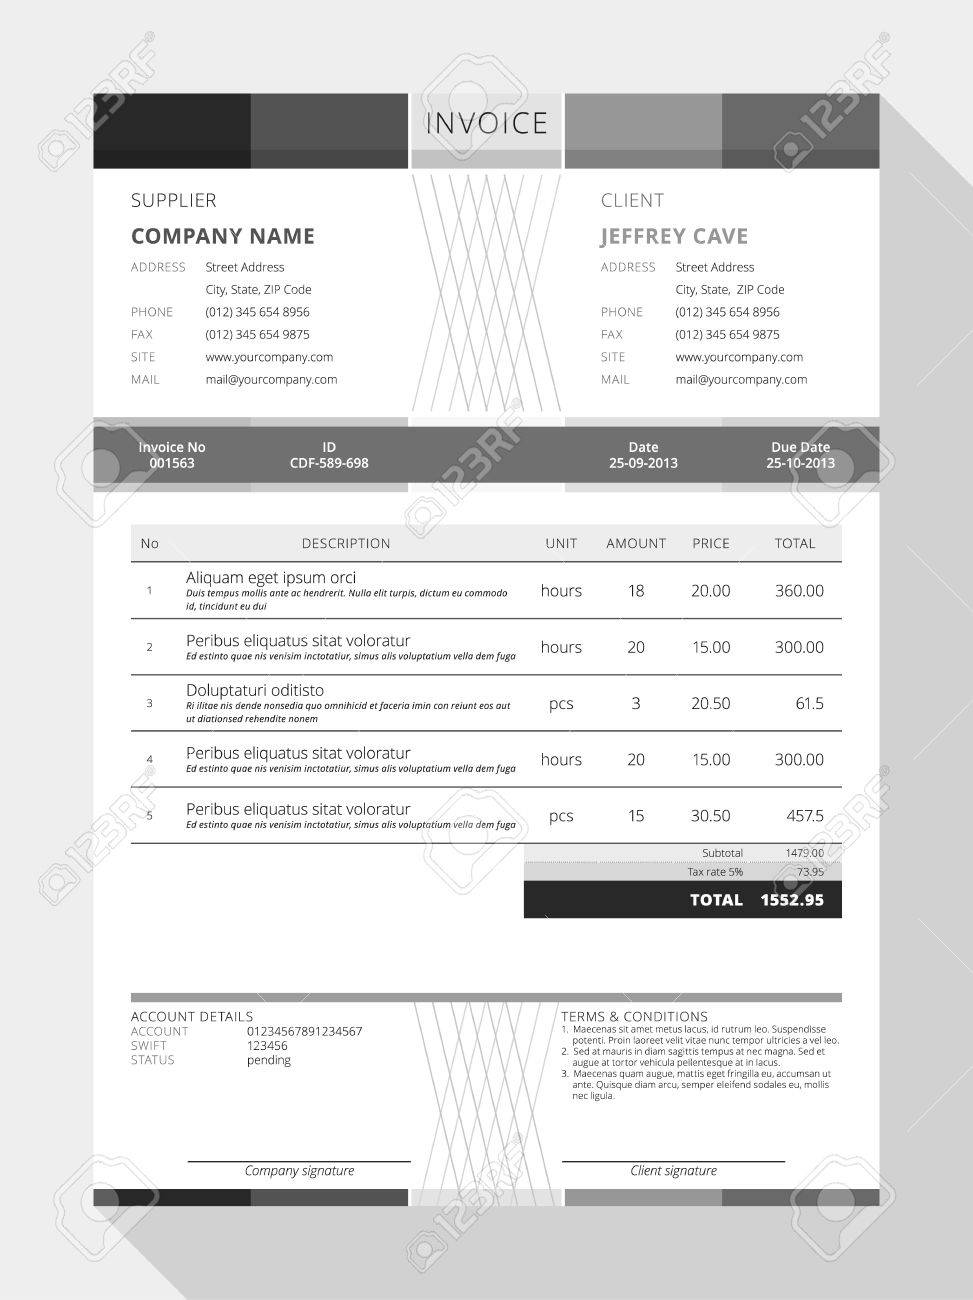 Aldiablosus  Wonderful Design An Invoice  Professional Graphic Design Invoice  With Glamorous Vector Customizable Invoice Form Template Design Vector   Design An Invoice With Breathtaking Invoice Printing Company Also Blank Invoice Paper In Addition Repair Invoice Template And Deluxe Invoices As Well As Harvest Invoices Additionally Toyota Corolla Invoice Price From Happytomco With Aldiablosus  Glamorous Design An Invoice  Professional Graphic Design Invoice  With Breathtaking Vector Customizable Invoice Form Template Design Vector   Design An Invoice And Wonderful Invoice Printing Company Also Blank Invoice Paper In Addition Repair Invoice Template From Happytomco